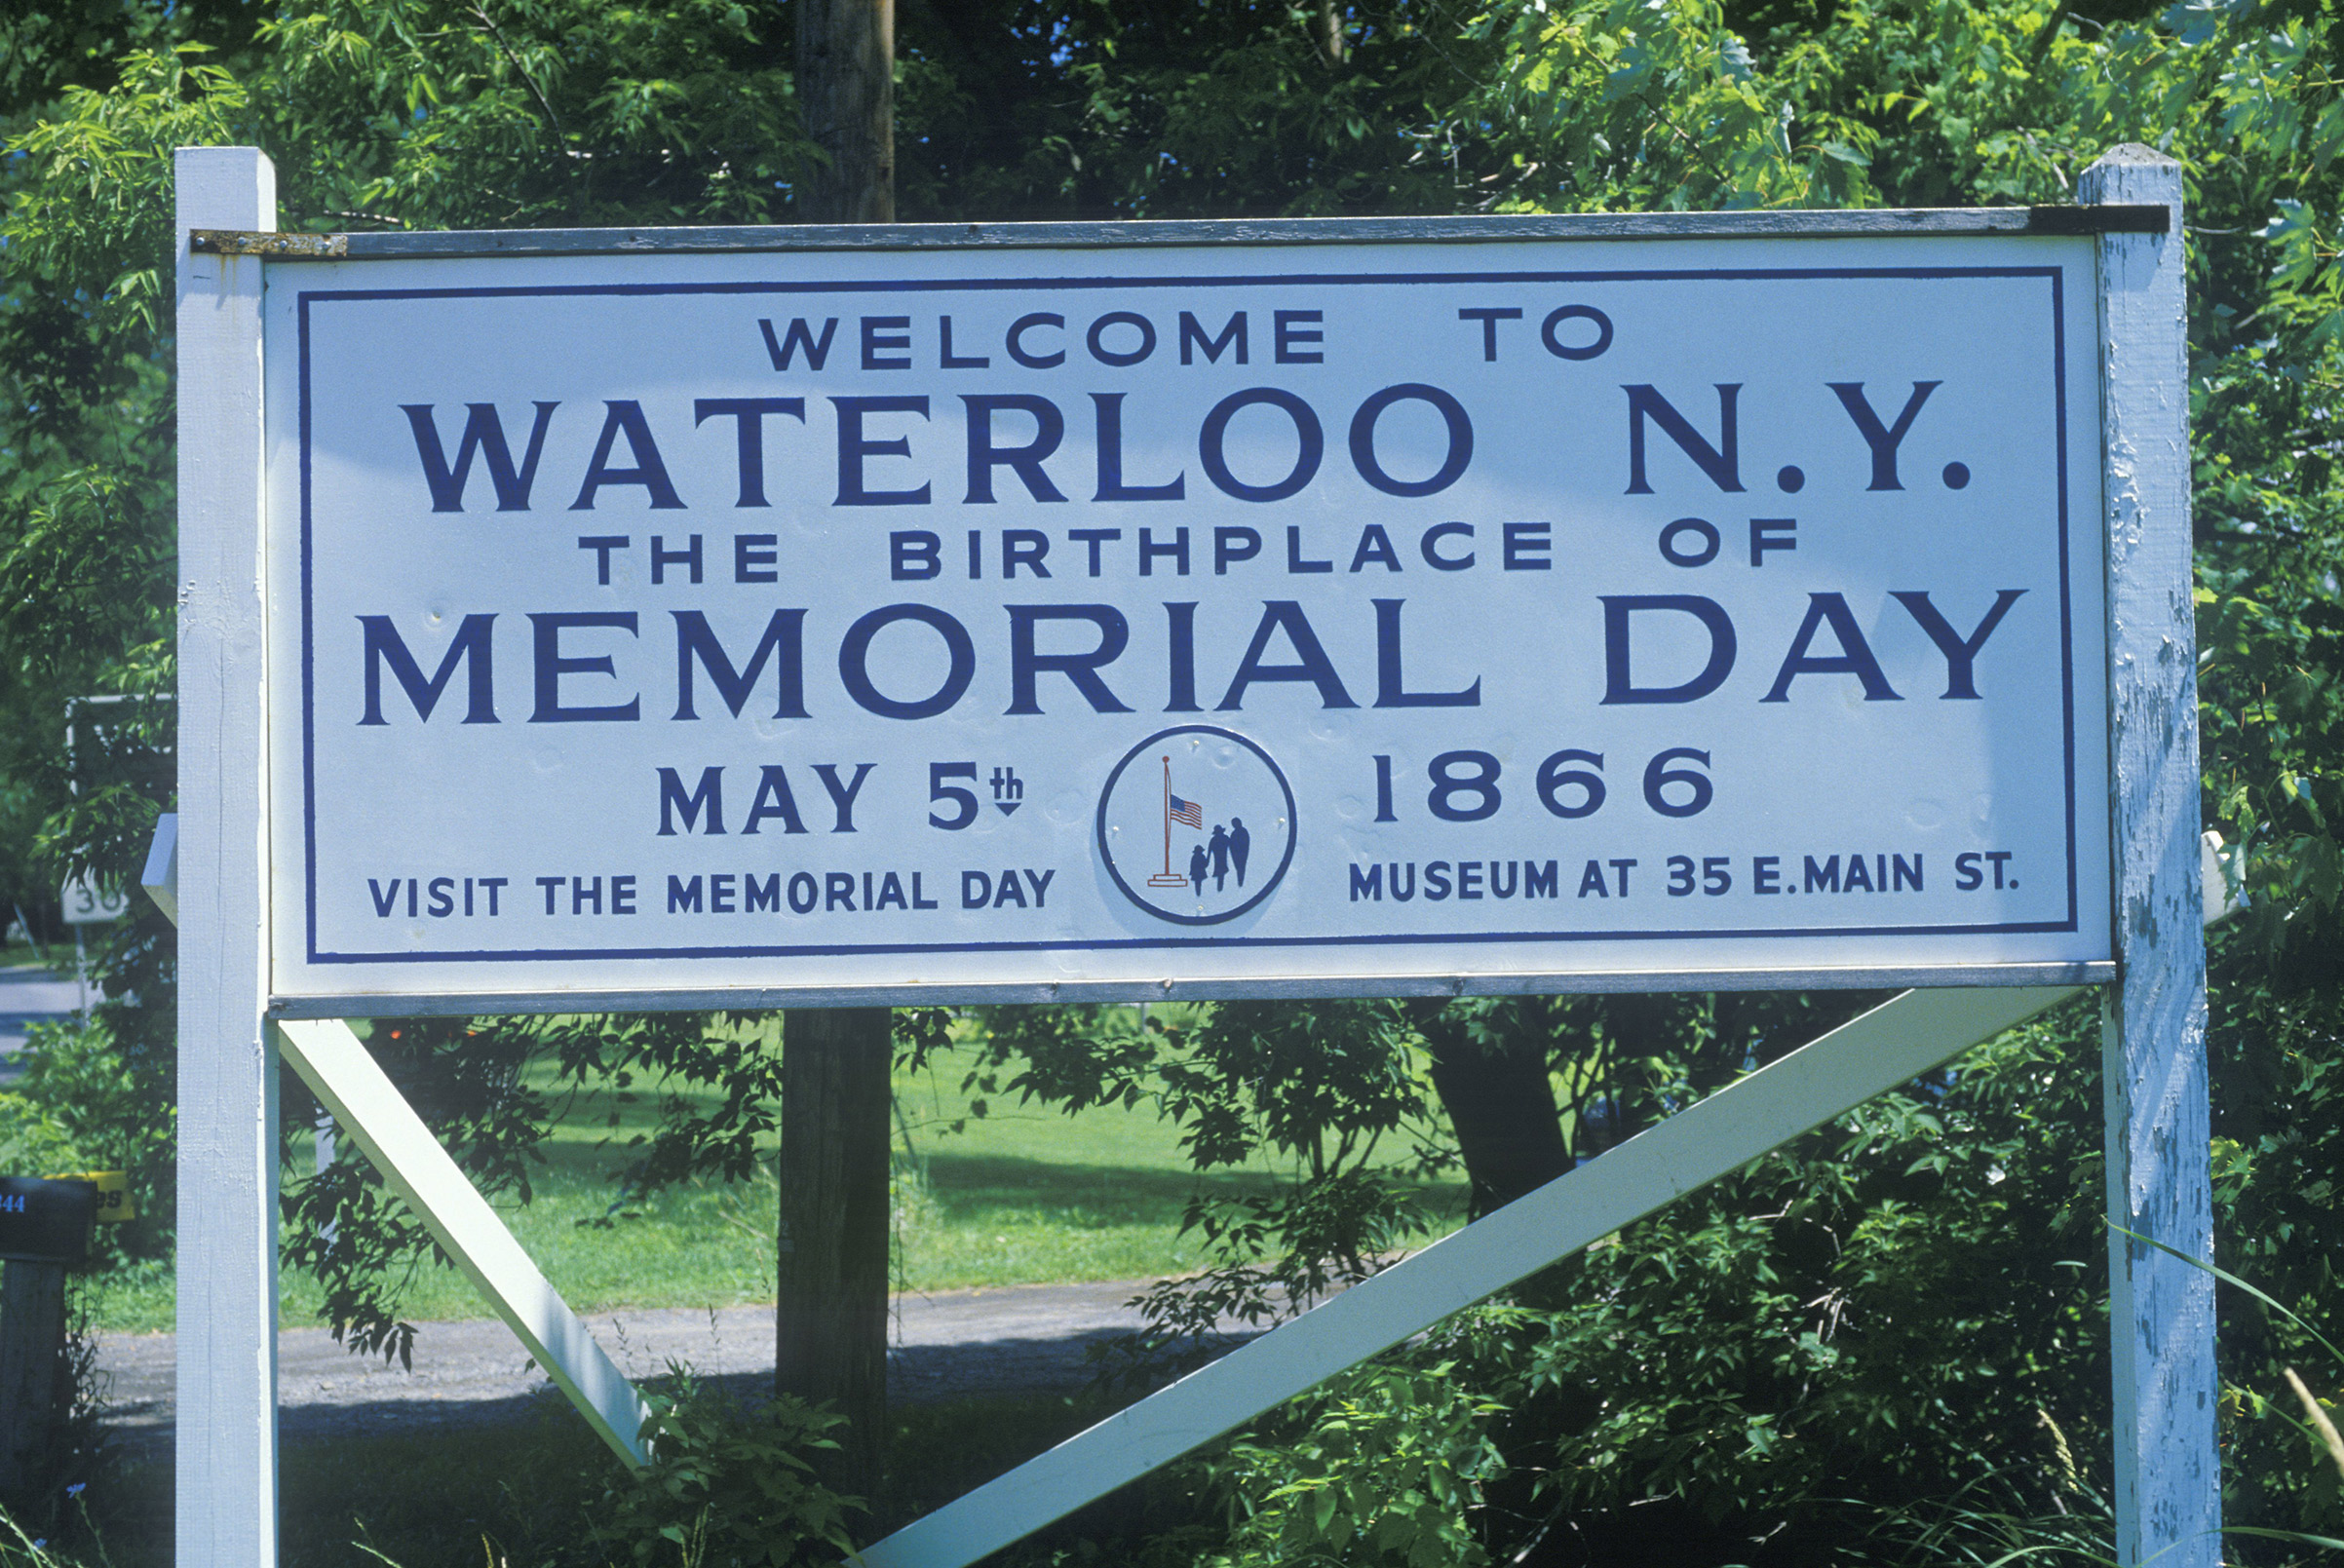 Waterloo, N.Y. has claimed to be the birthplace of Memorial Day. But evidence suggests the holiday's origins are further south.